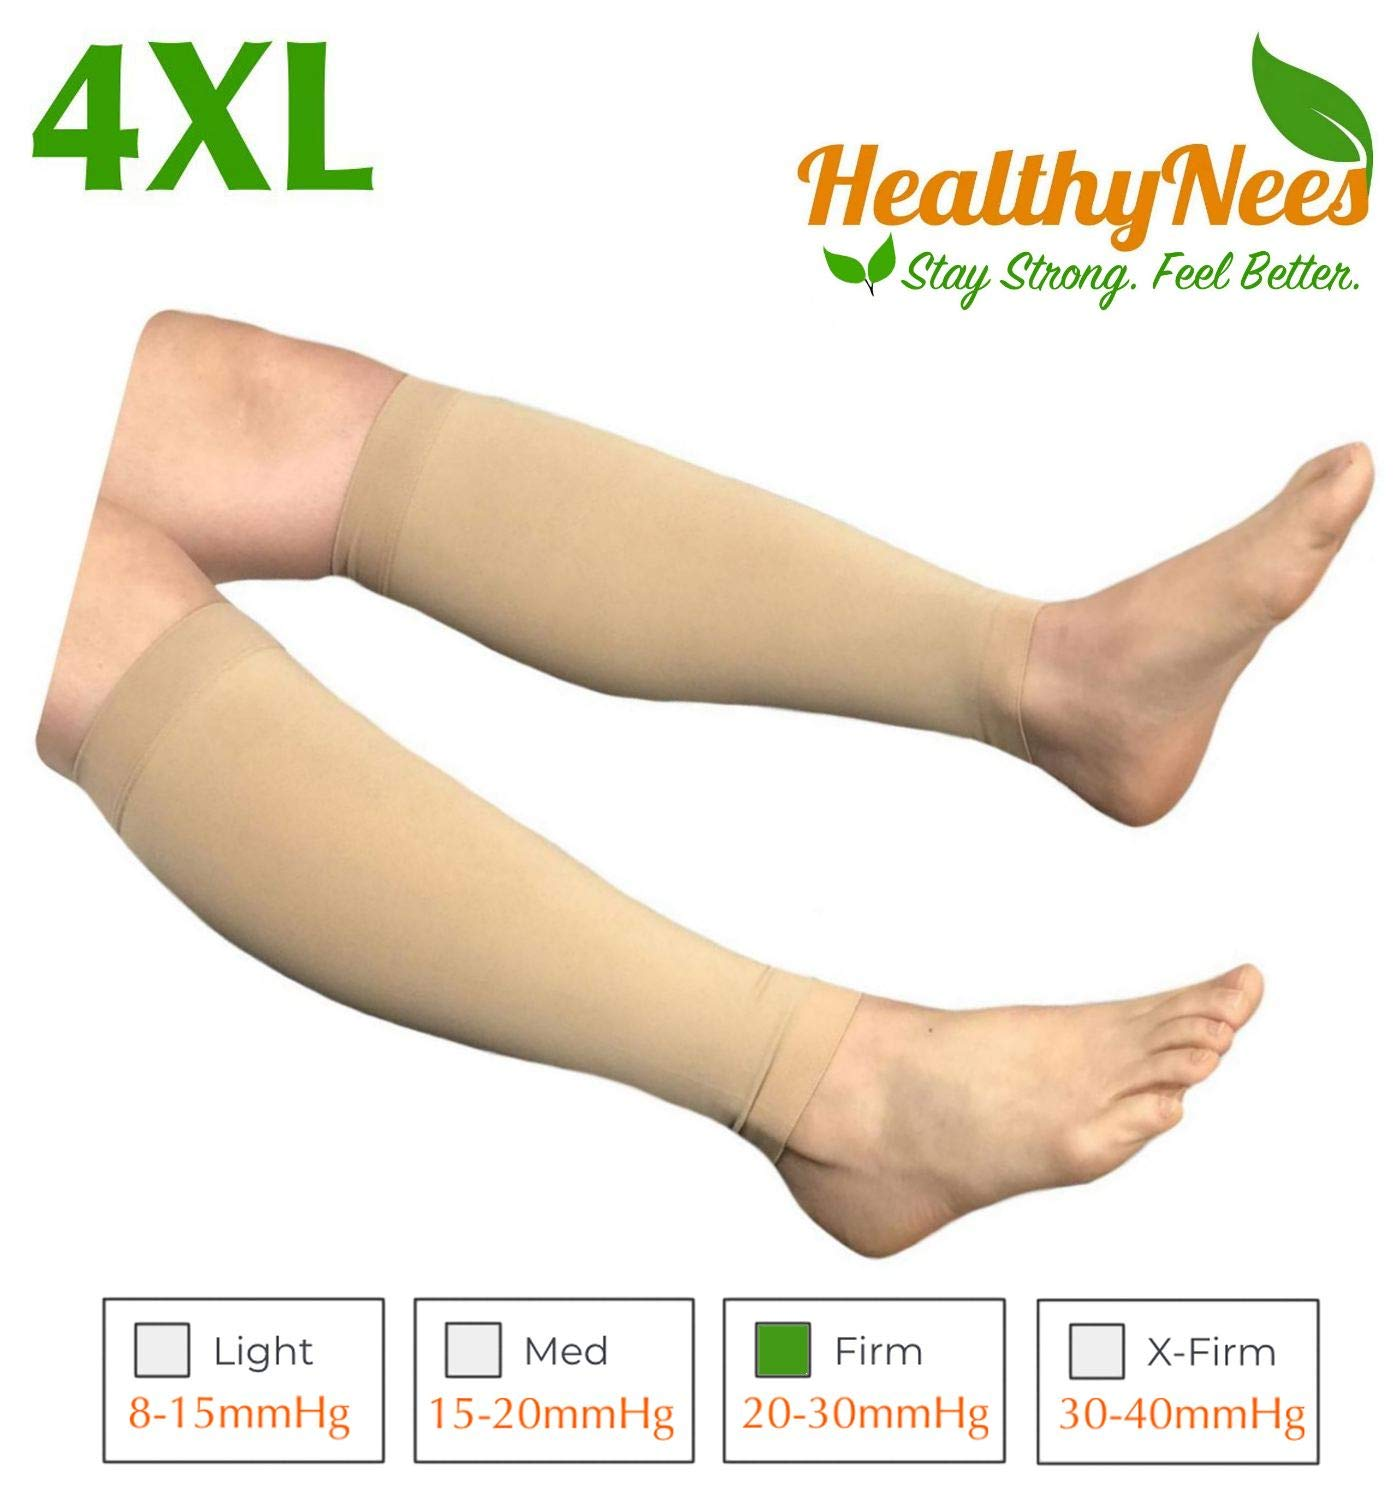 HealthyNees Shin Calf Sleeve 20-30 mmHg Medical Compression Circulation Extra Wide Plus Size Big Tall Leg Thick Calves Firm Support (Beige, Wide Calf 4XL) by HealthyNees